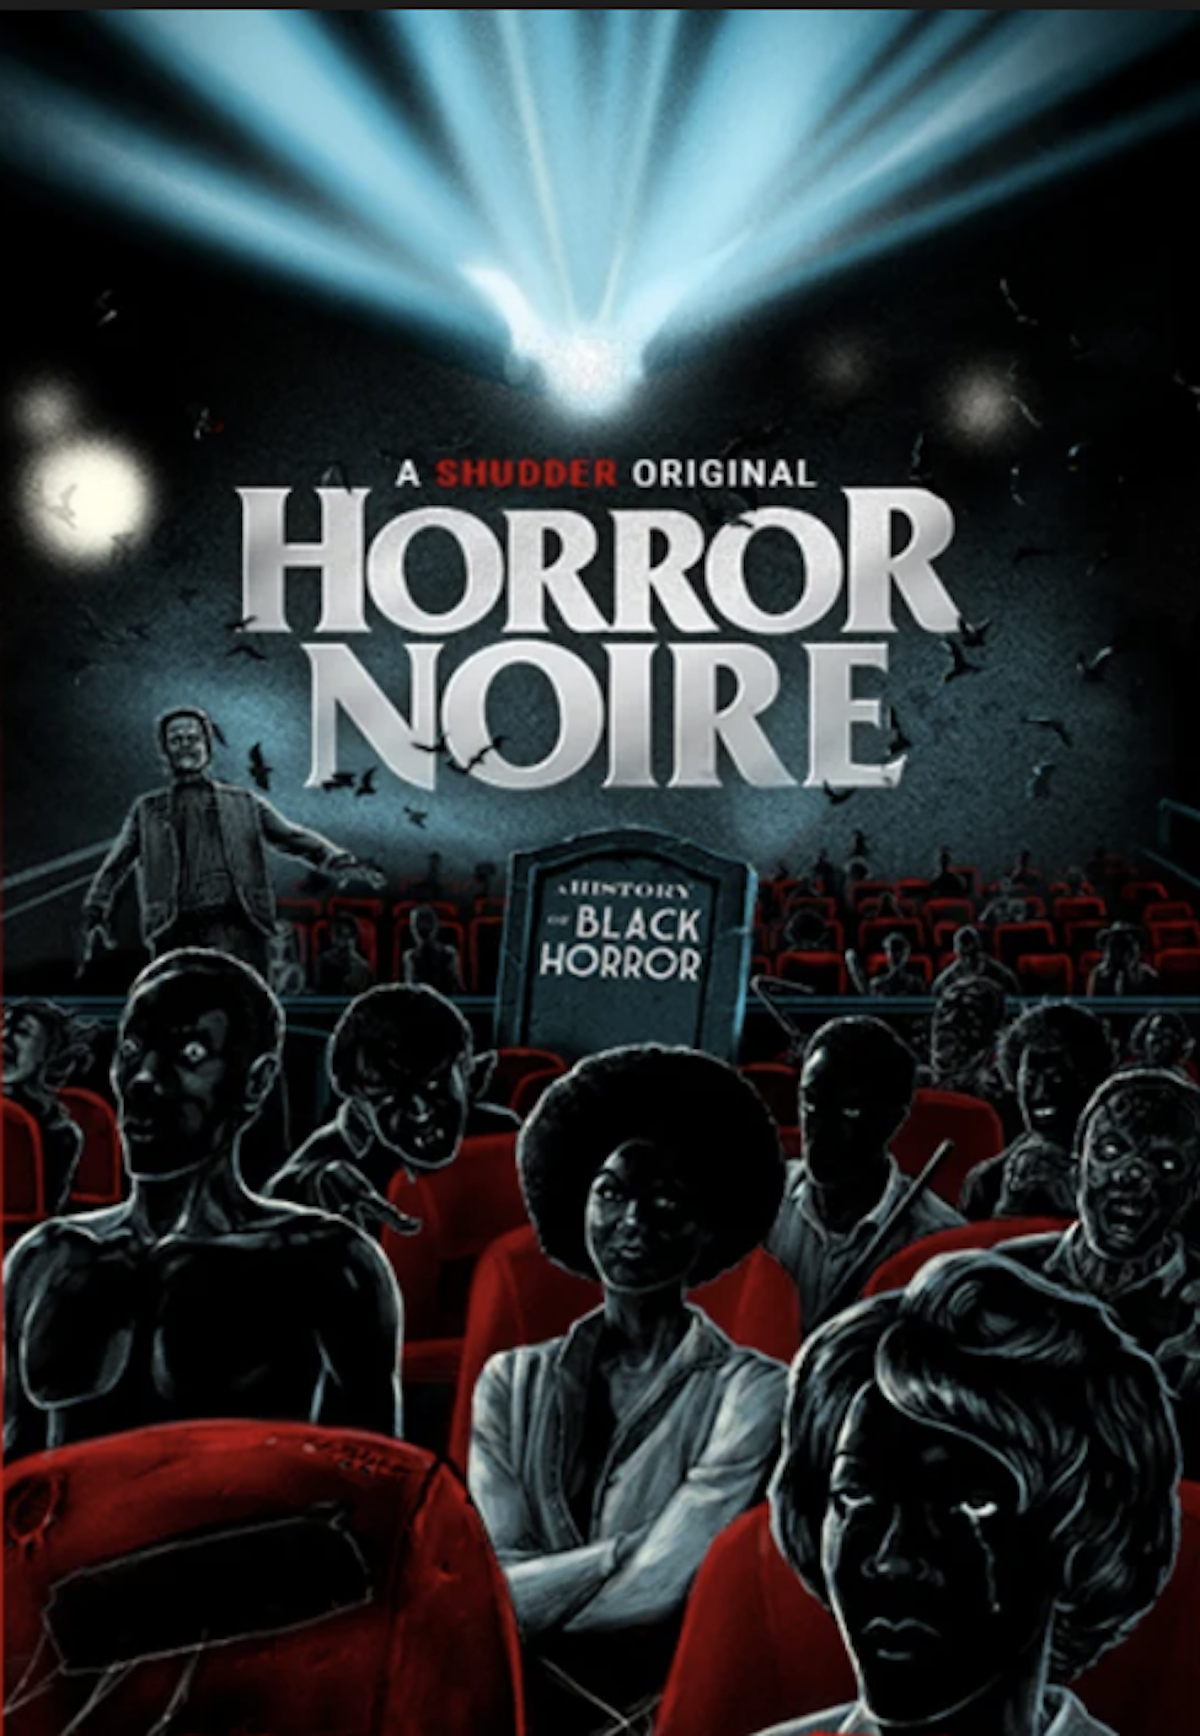 horror noire documentary, black horror movies, candyman, jordan peele, shudder, streaming horror movies